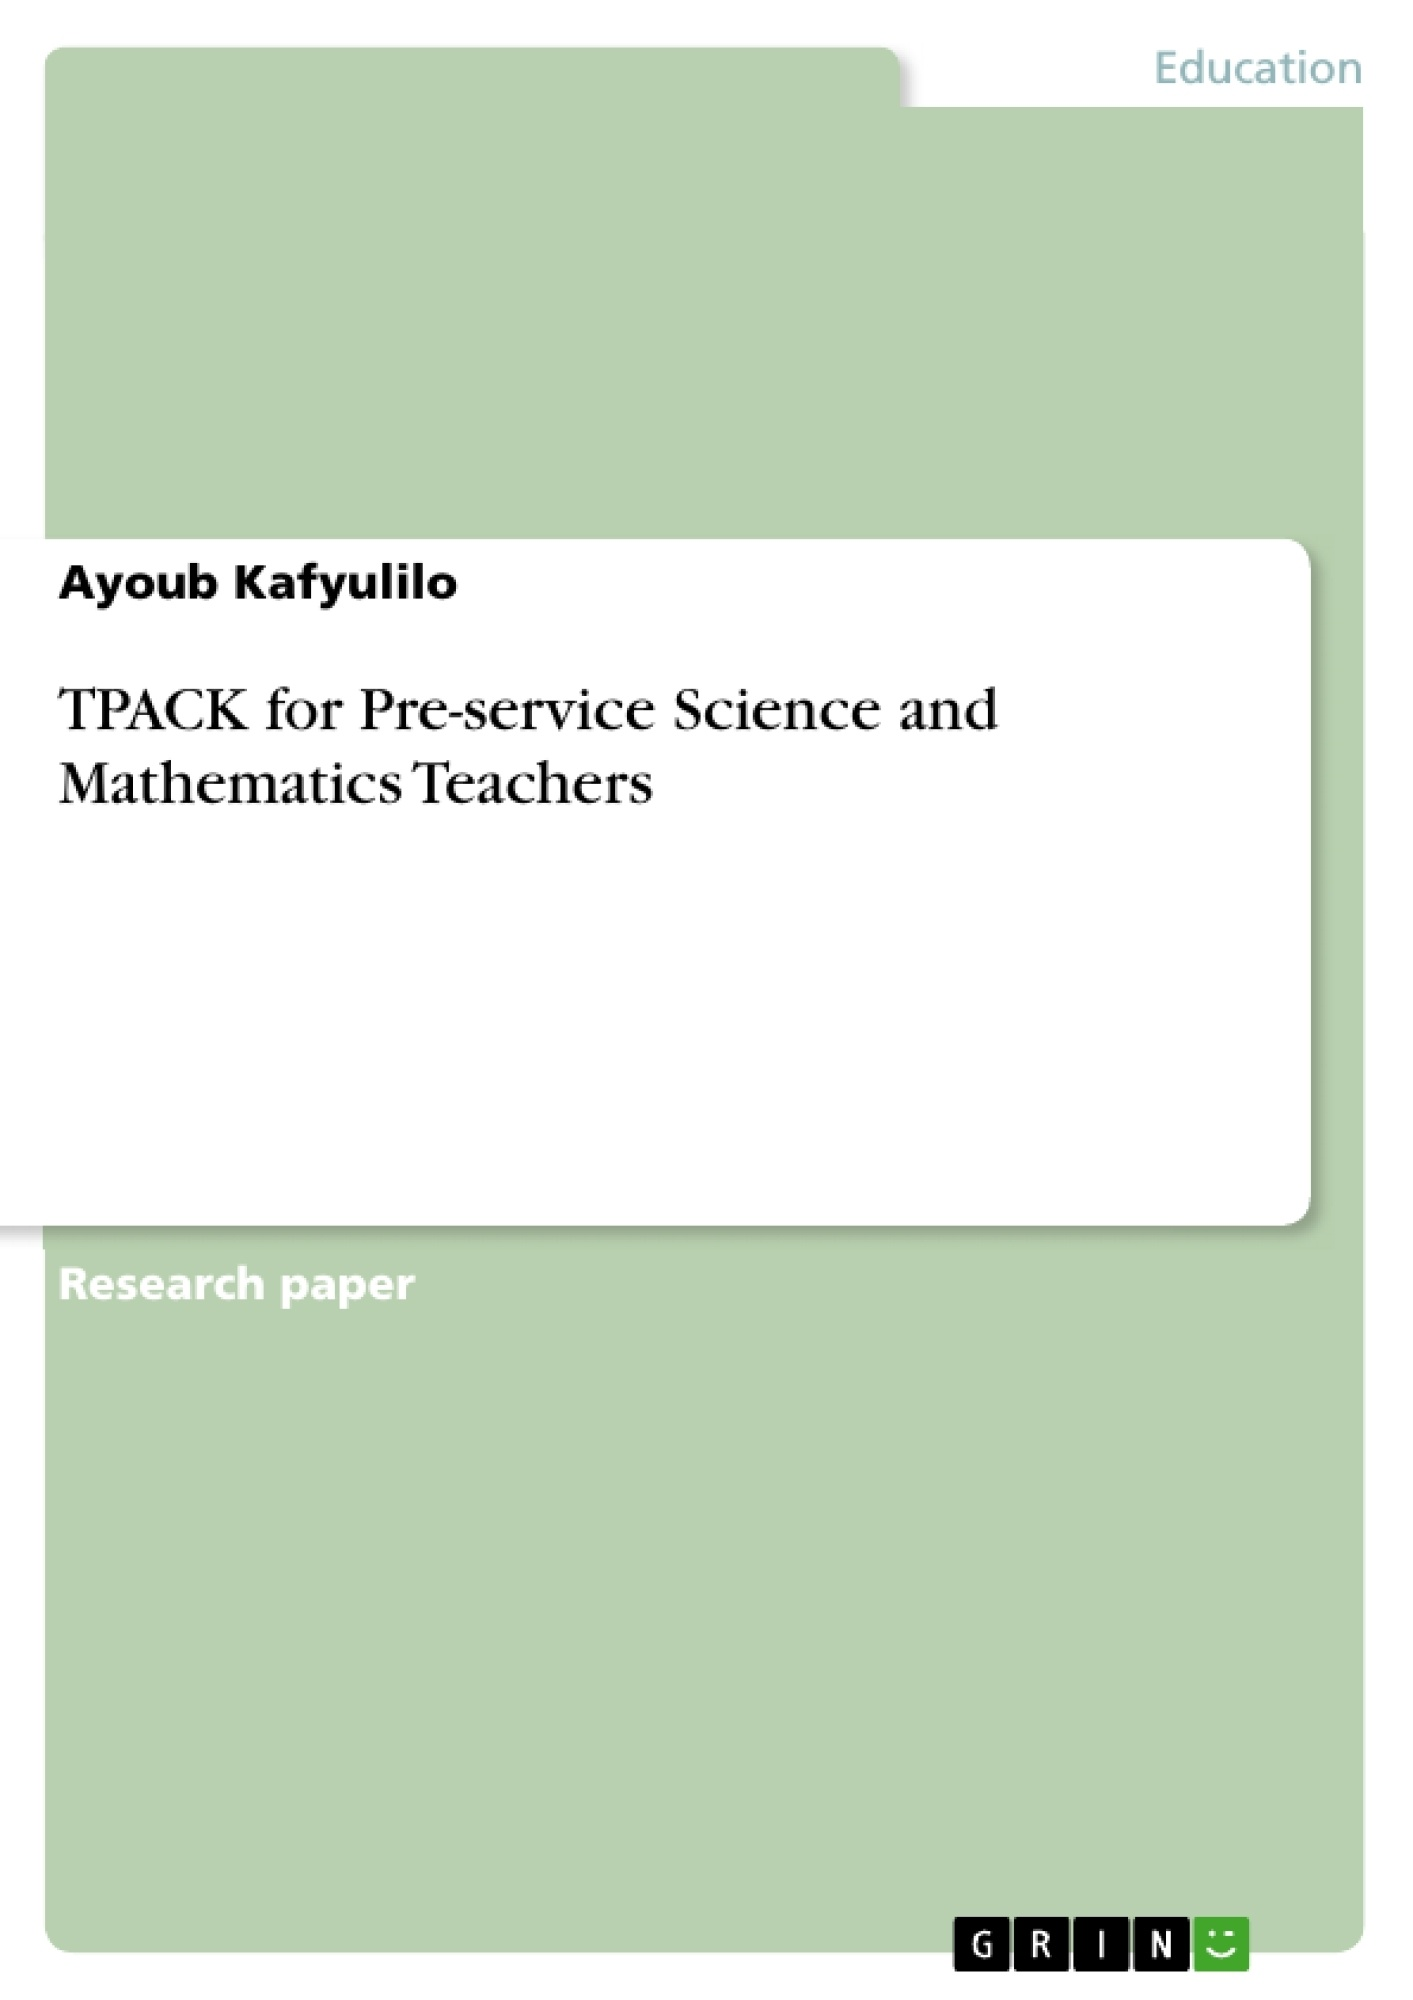 Title: TPACK for Pre-service Science and Mathematics Teachers